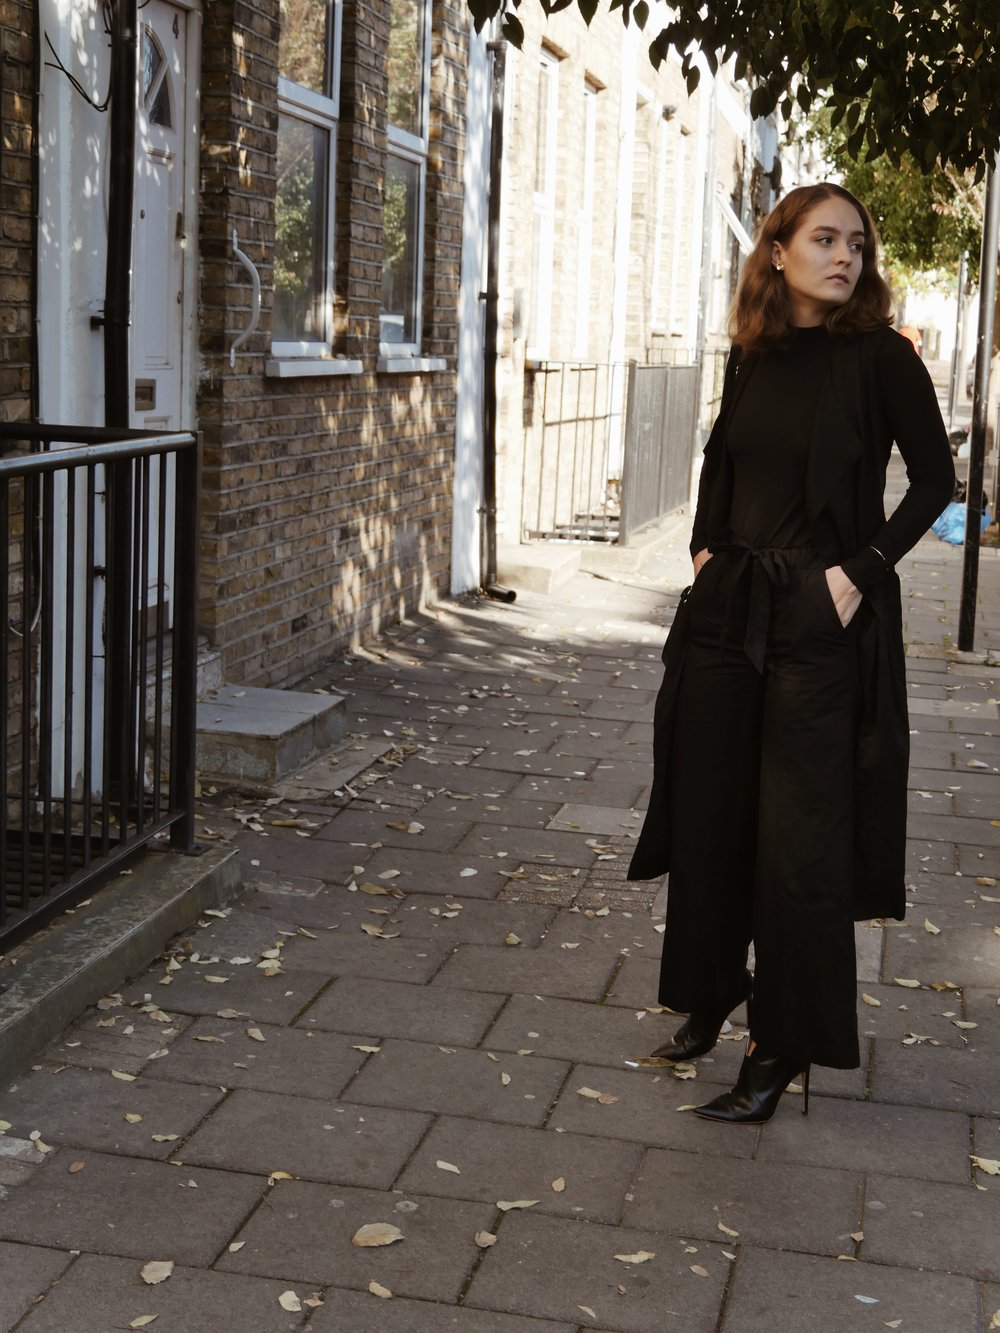 Livia wears a top and pants by  Miss Green , coat by  Studio Cossac , shoes by  Love Sofie , and bag by  LaBante London .